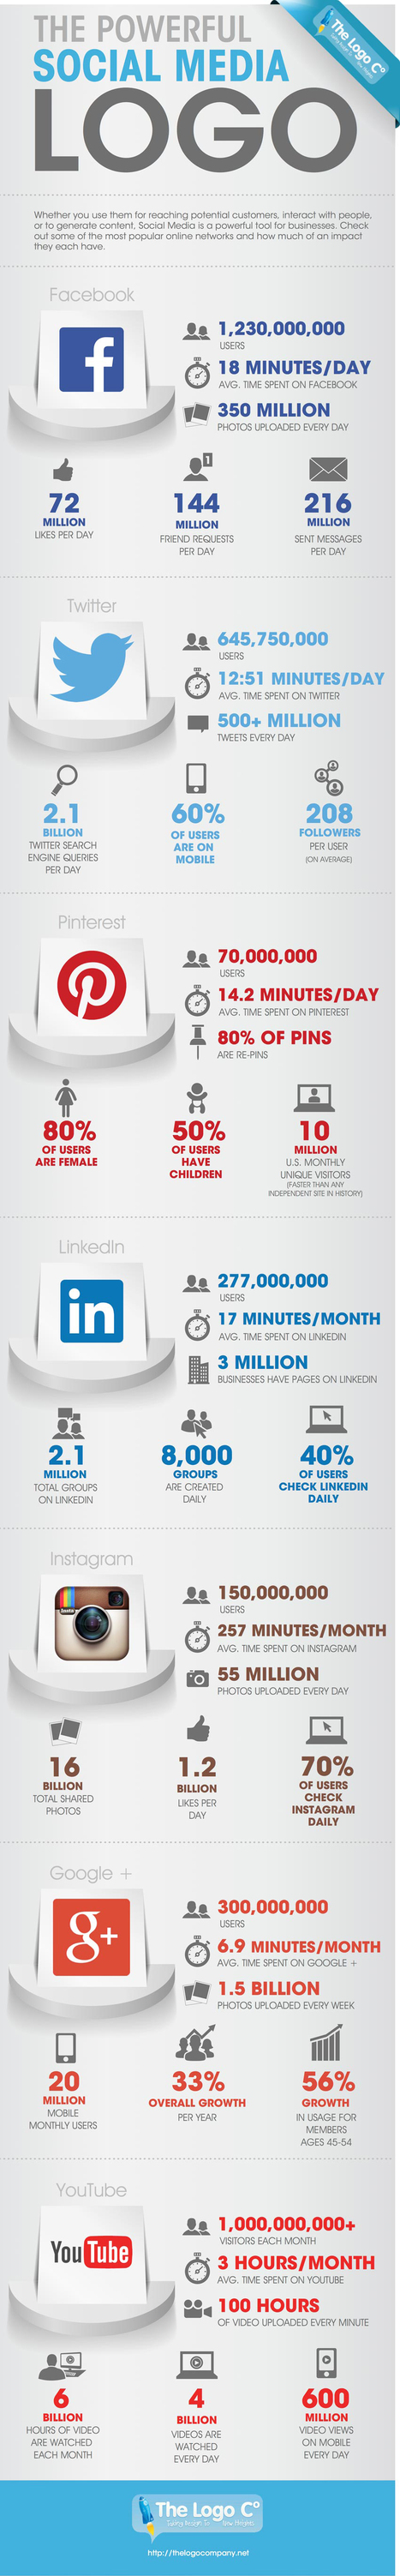 2014: The Numbers Behind Social Media [infographic] | Smart Evolution | Scoop.it